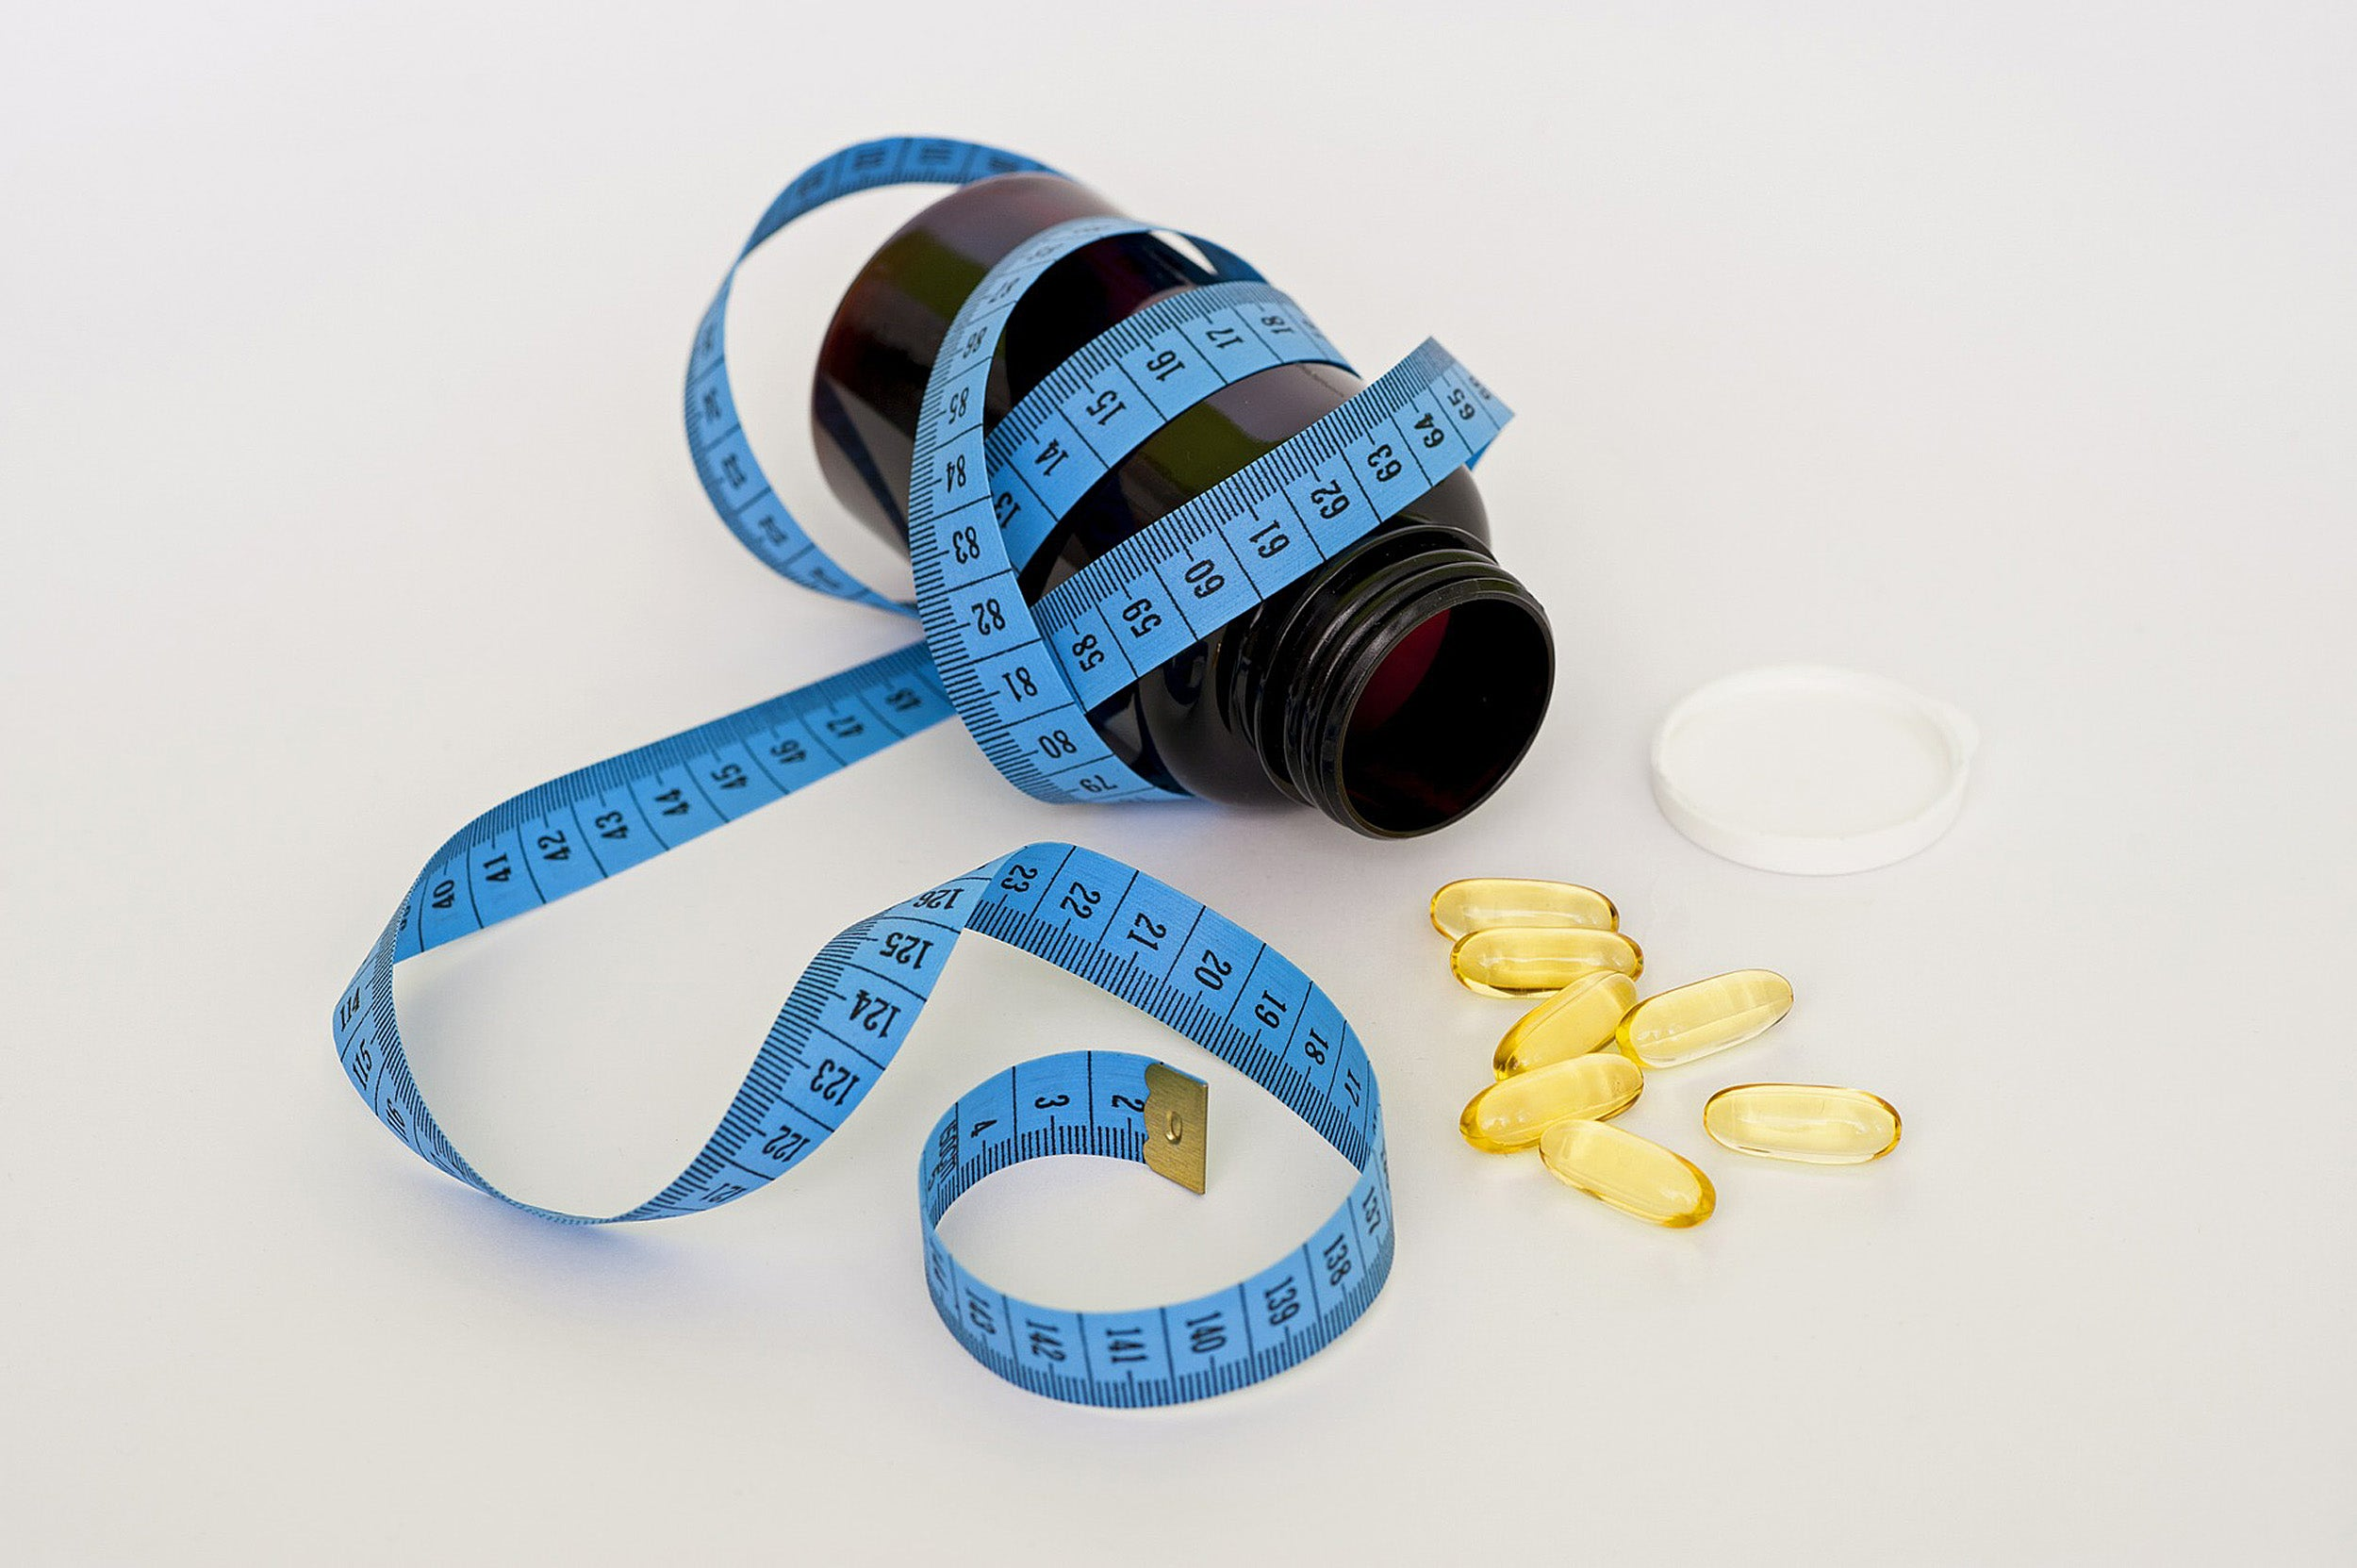 A blue measuring tape wrapped around a medicine bottle, with loose pills scattered around the open lid.